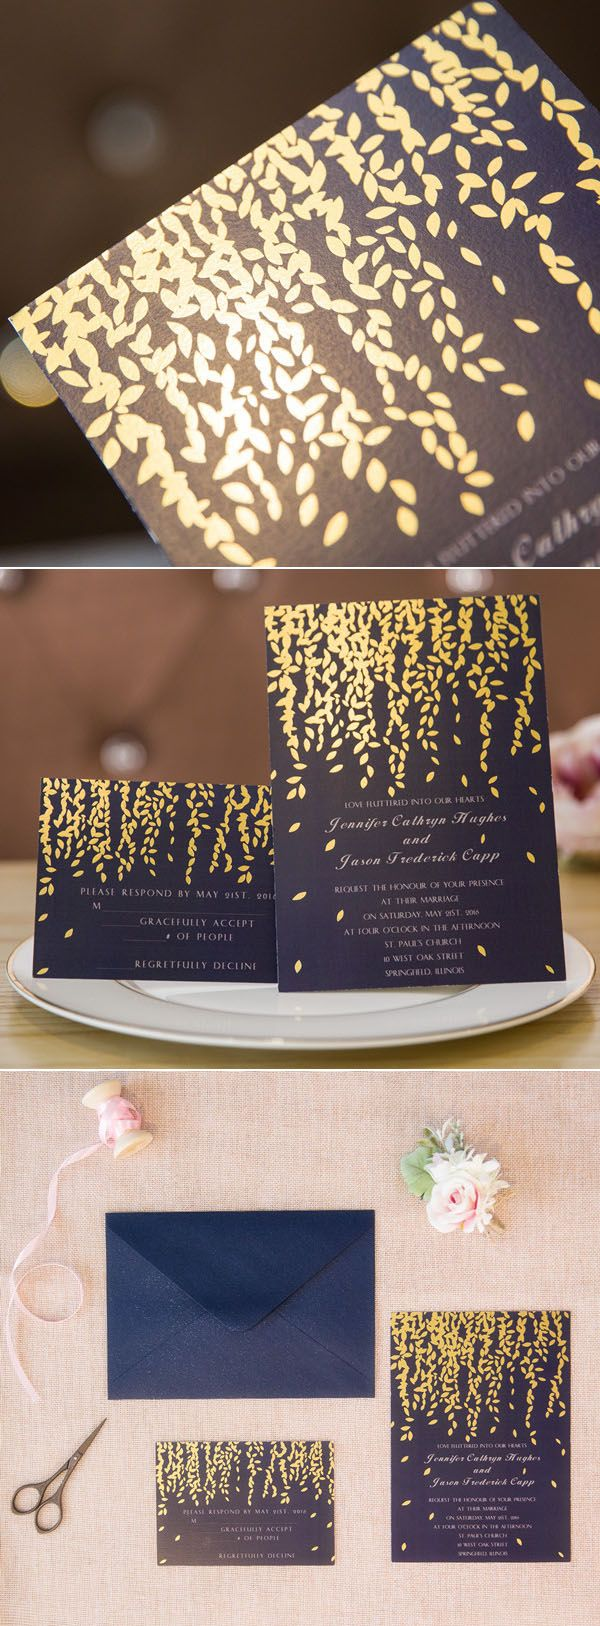 Leaves themed navy blue and gold foil wedding invitations elegantwinvites